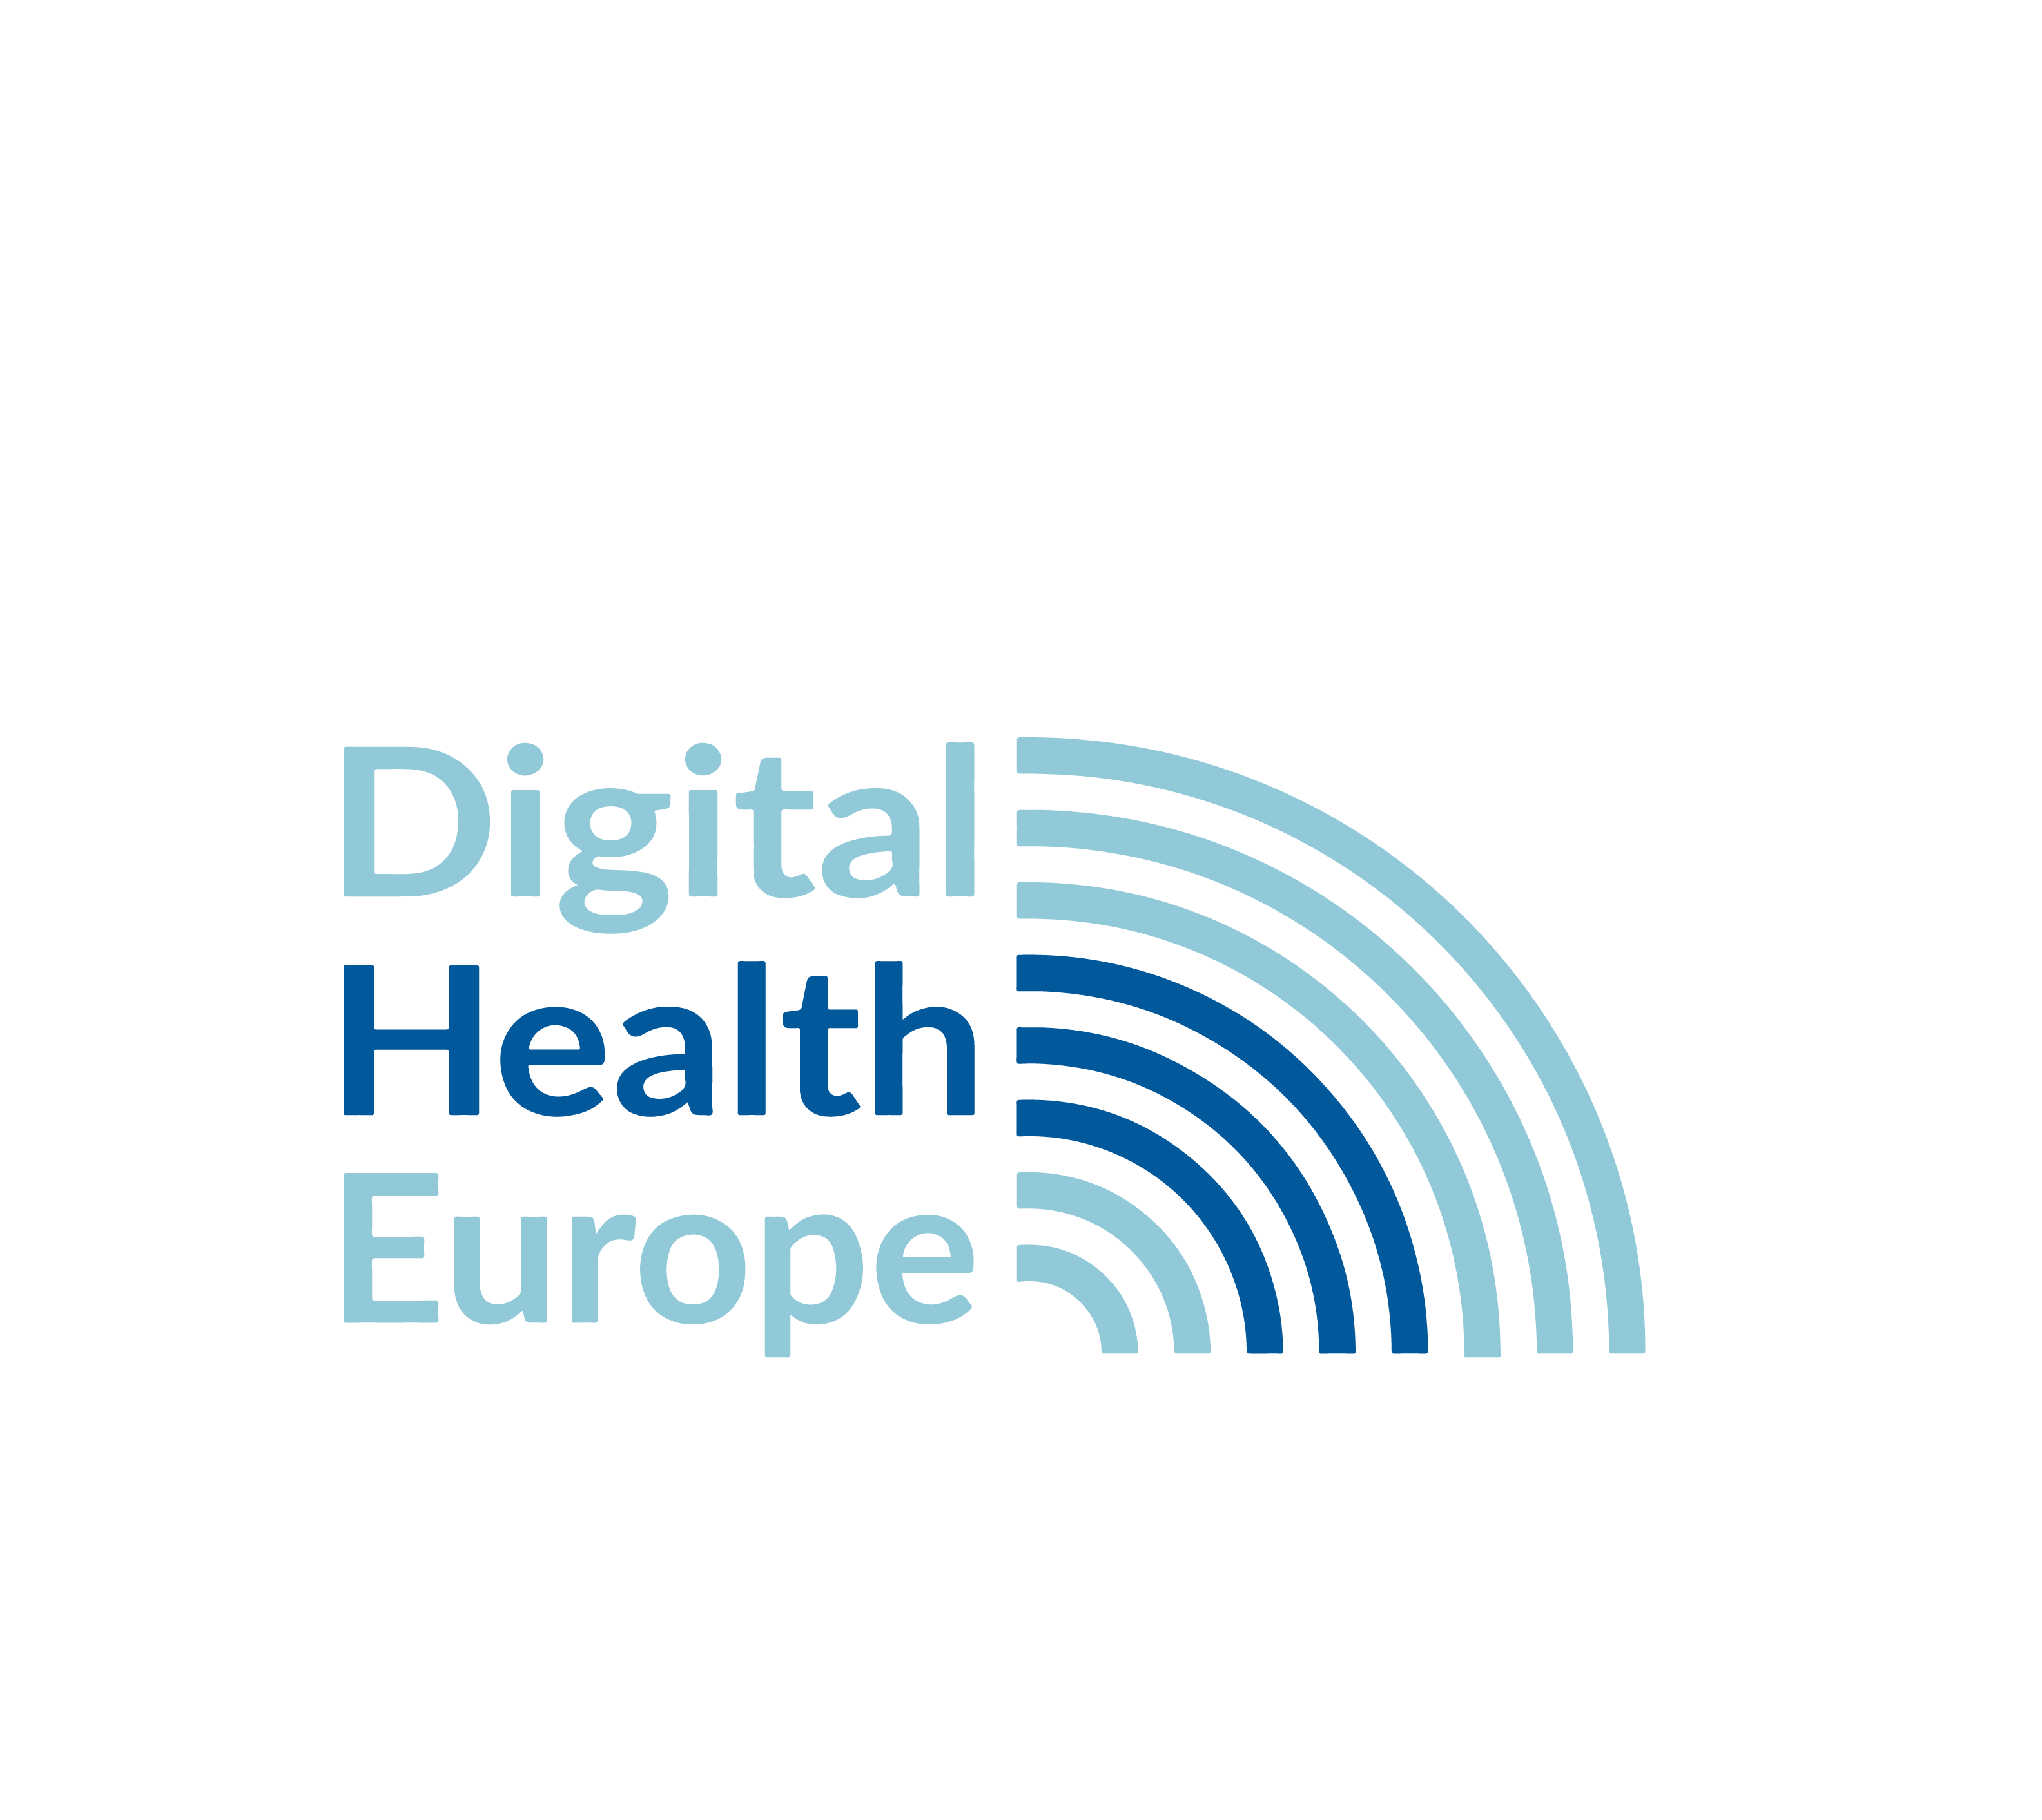 Digital Health Europe